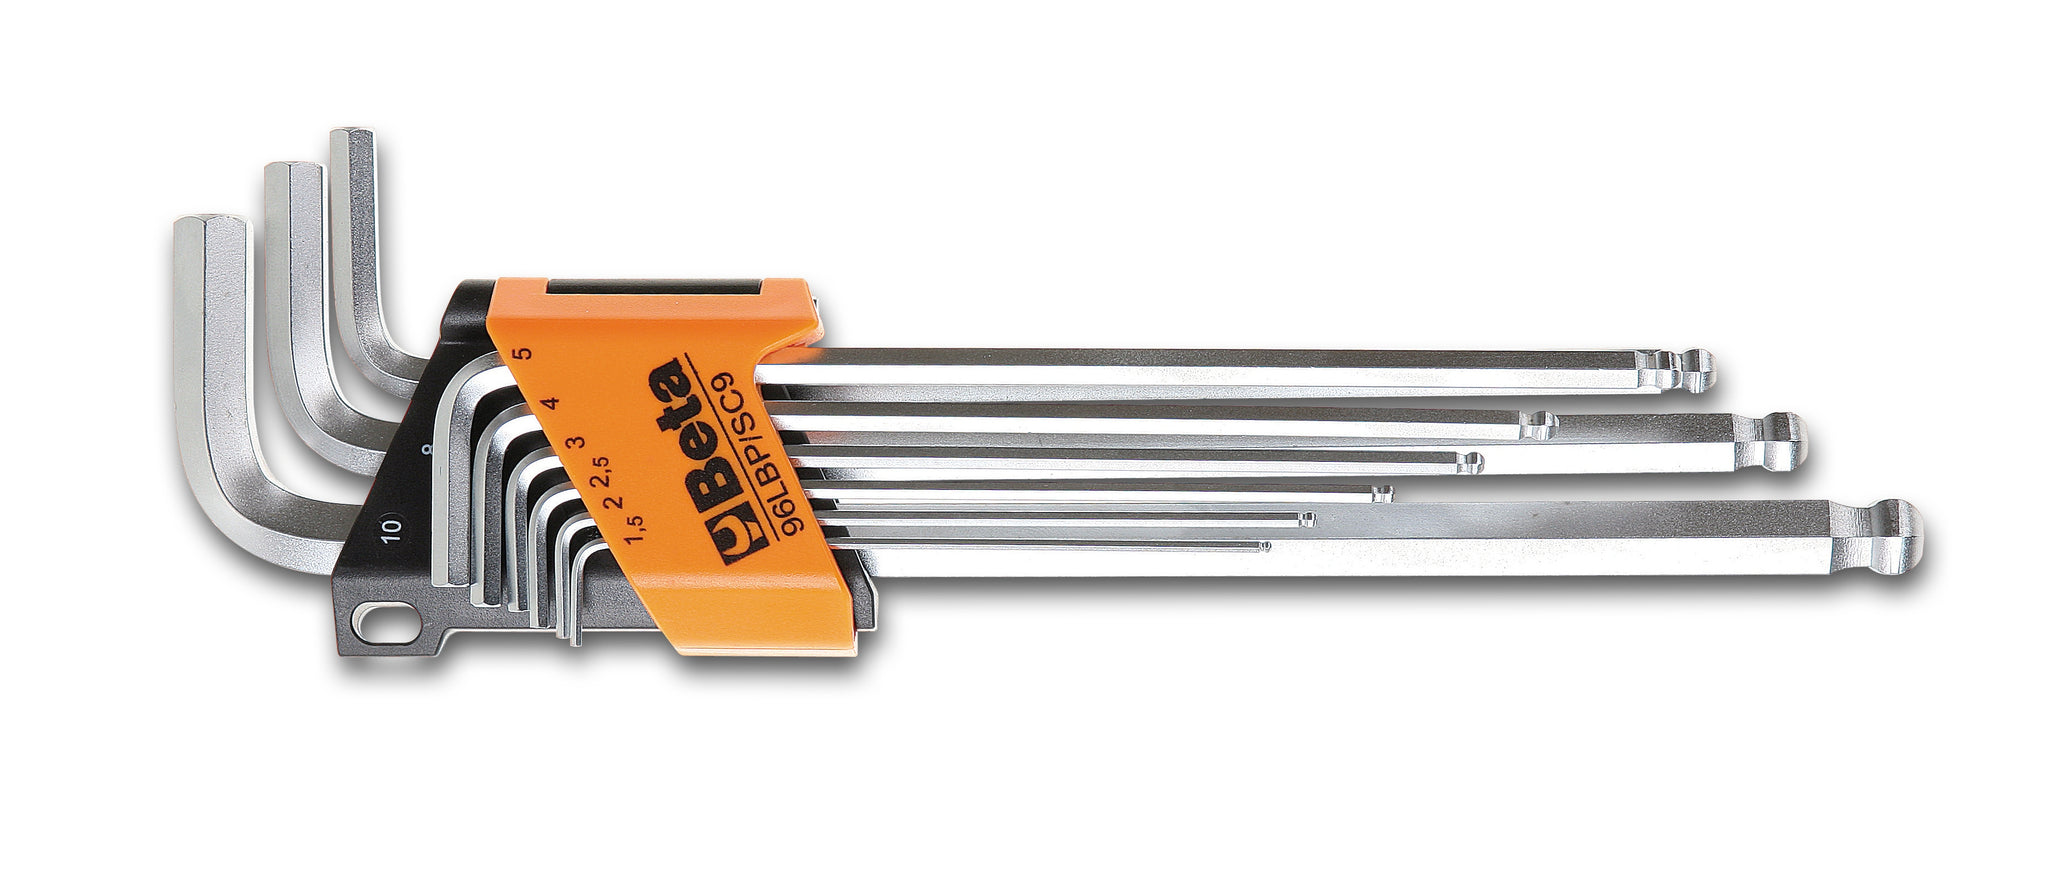 Beta Tools 96LBP/SC9  Set of 9 ball head offset hexagon key wrenches, extra-long model